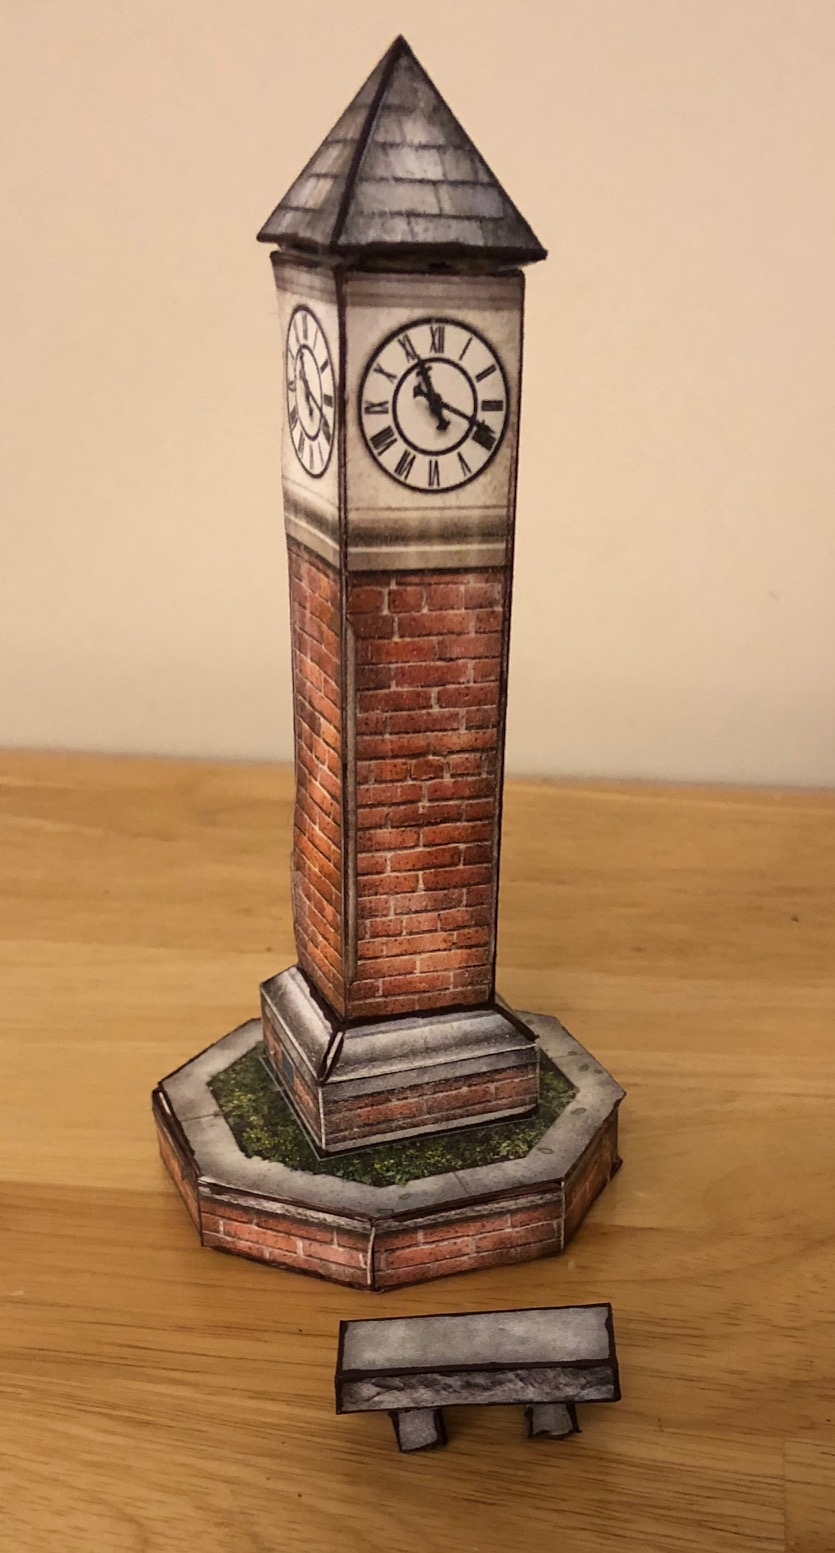 A papercraft clock tower and bench with stone texture.